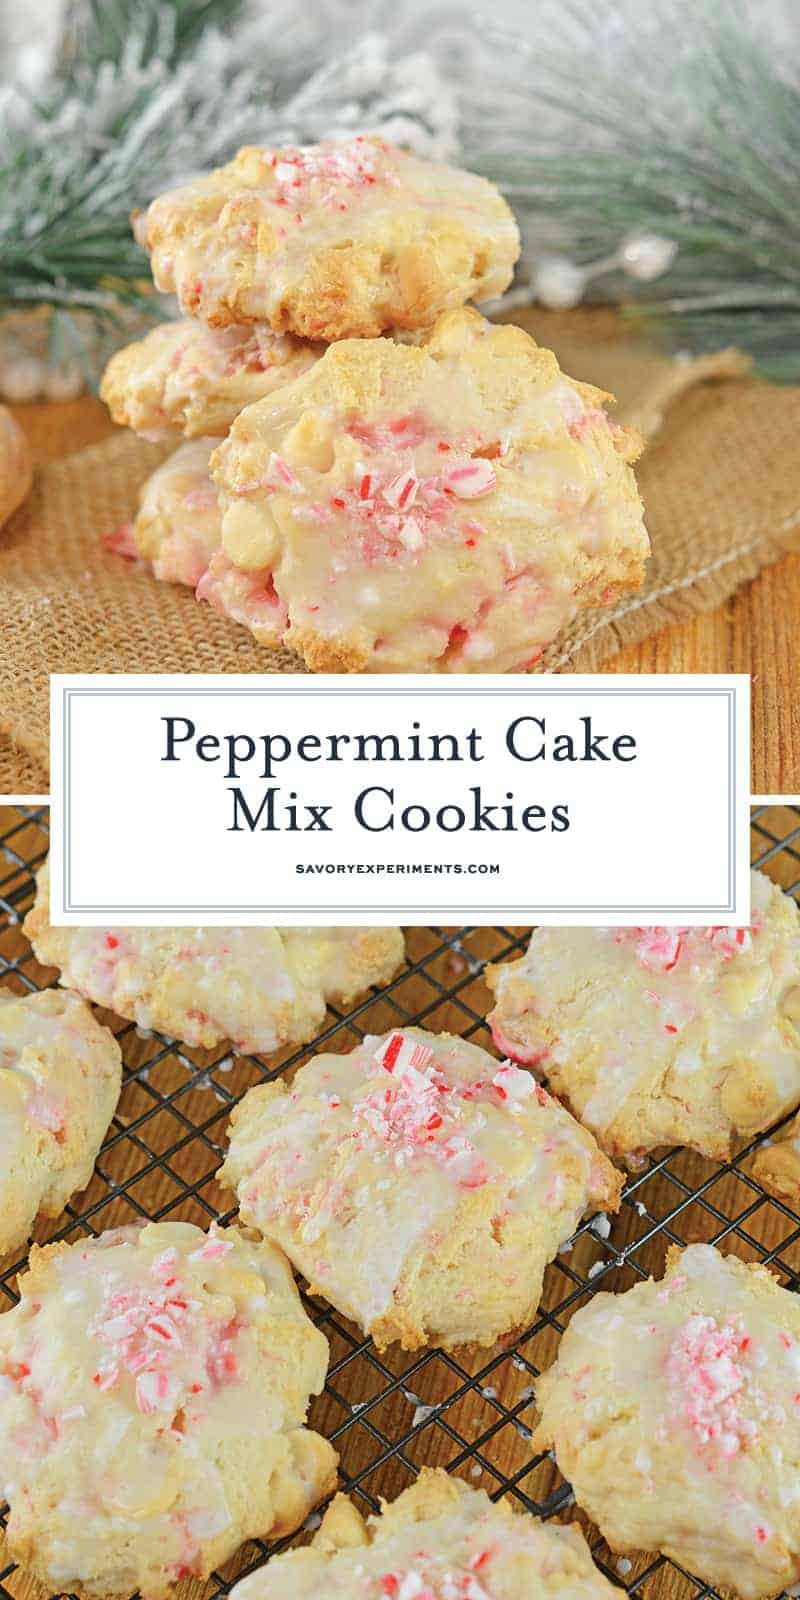 Peppermint Cake Mix Cookies only use 5 ingredients and are super soft and festive! Make these candy cane cookies for your kids party or a cookie exchange! #cakemixcookies #peppermintcookies #candycanecookies www.savoryexperiments.com